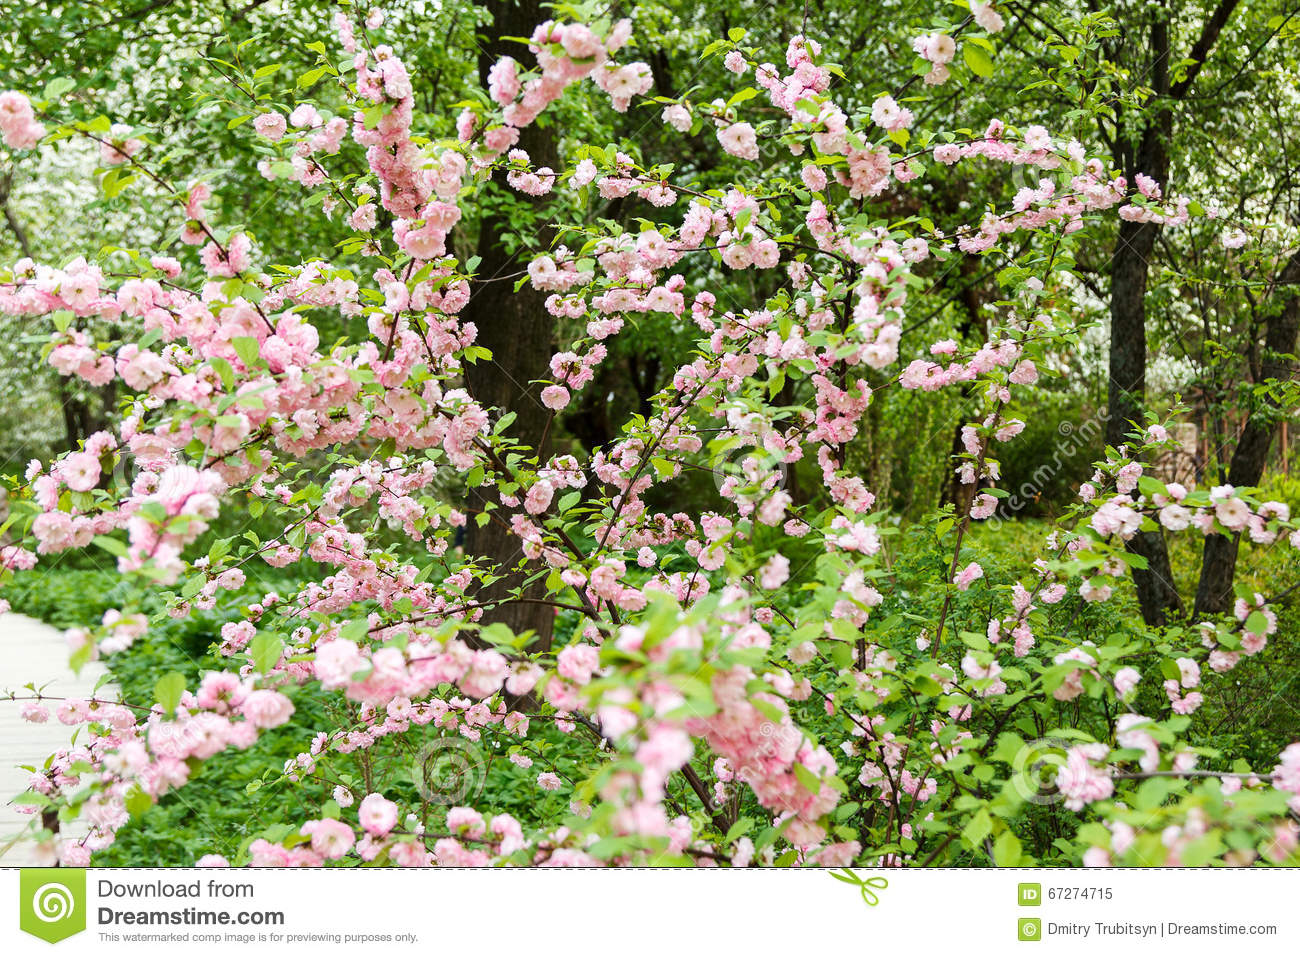 Wild Rose Bush With Pale Pink Flowers Stock Photo.